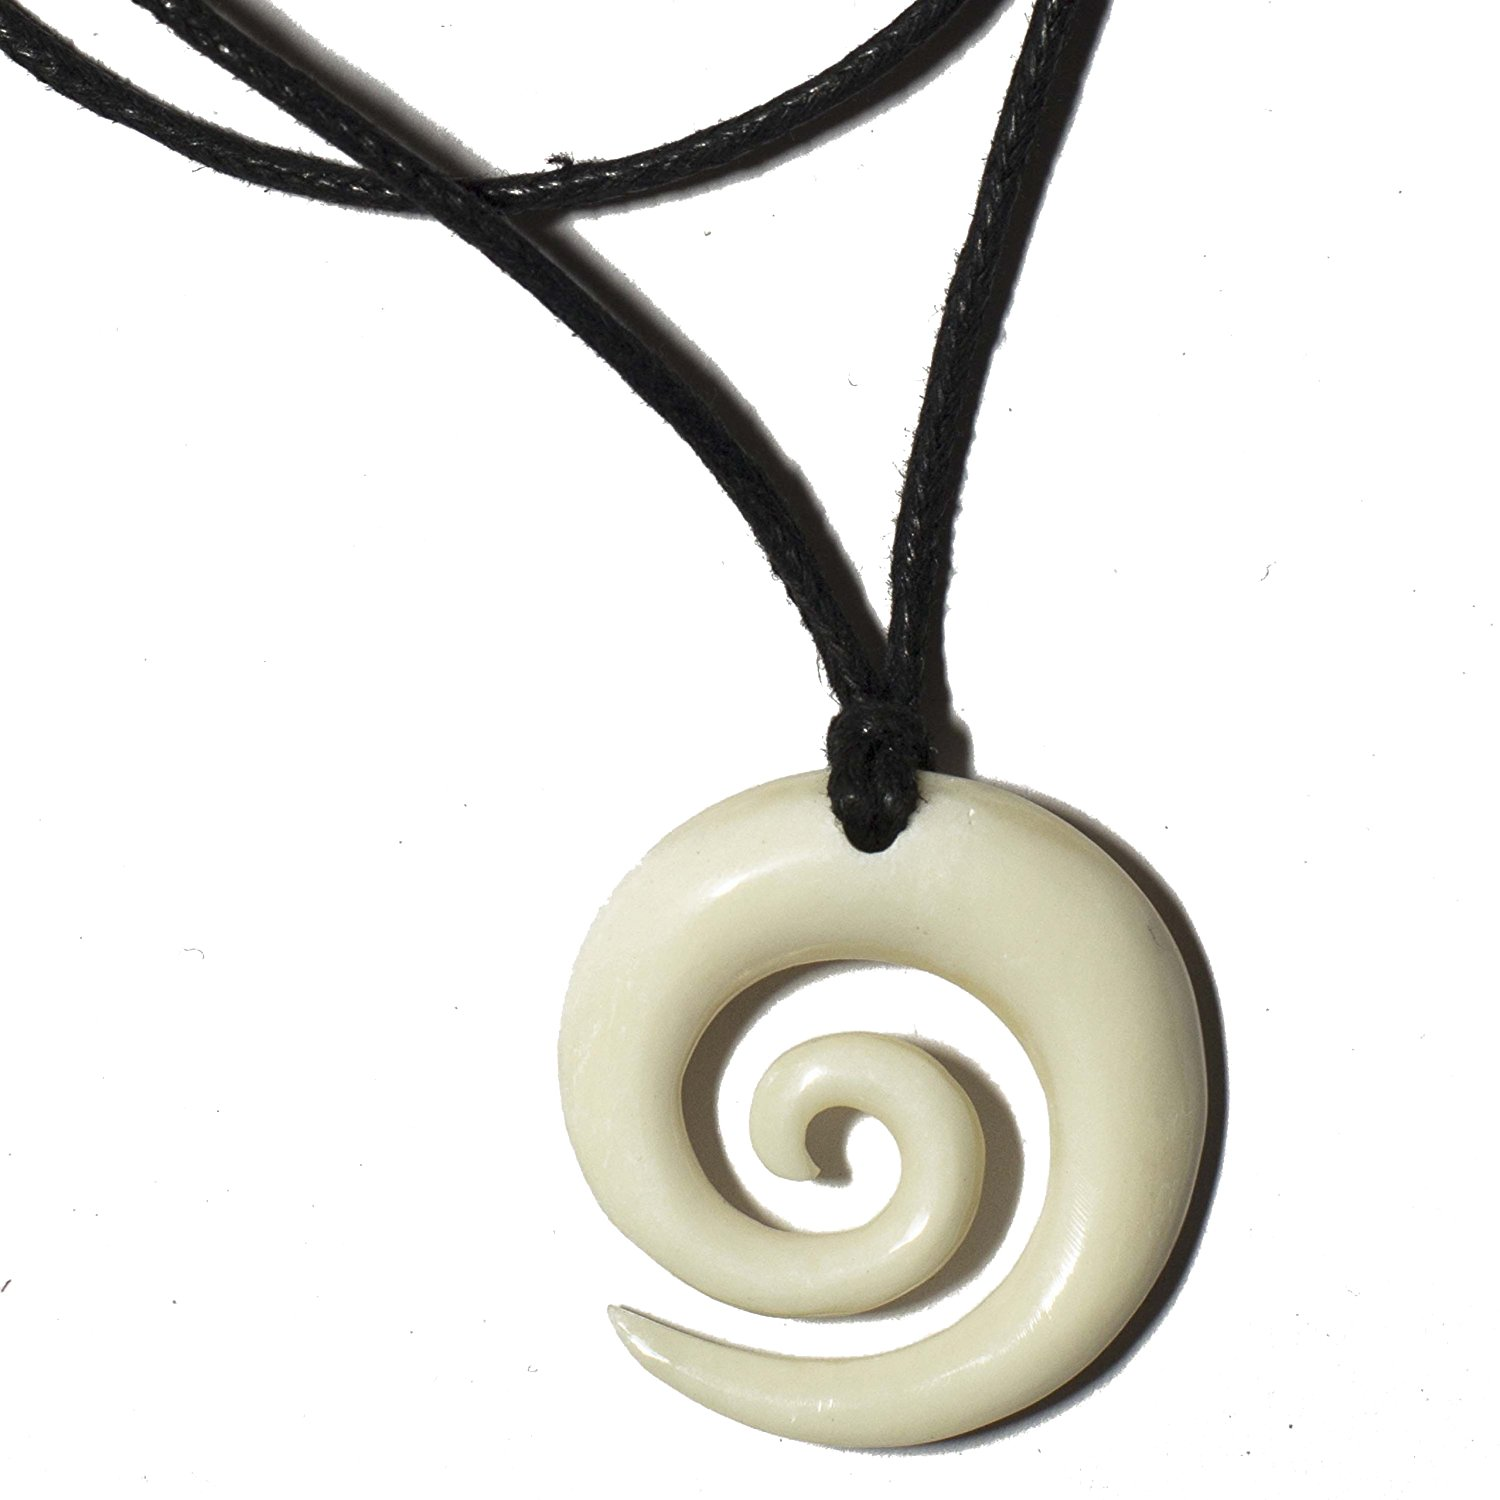 necklace bone men dp women s charm spiral com womens round handcarved jewelry koru pendant maori amazon